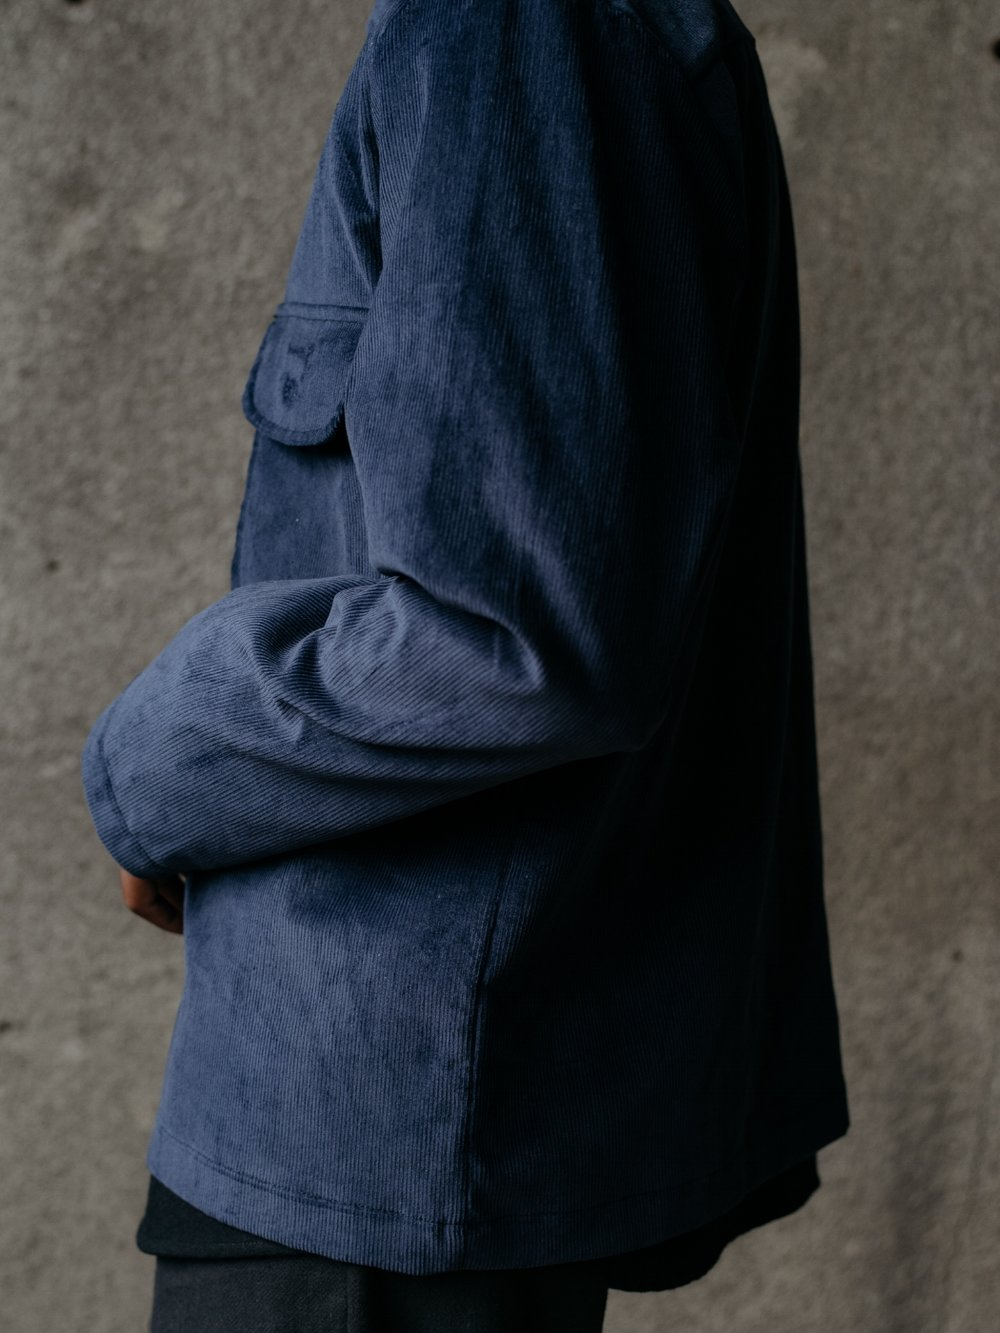 evan-kinori-field-shirt-blue-corduroy-fall-2017-1